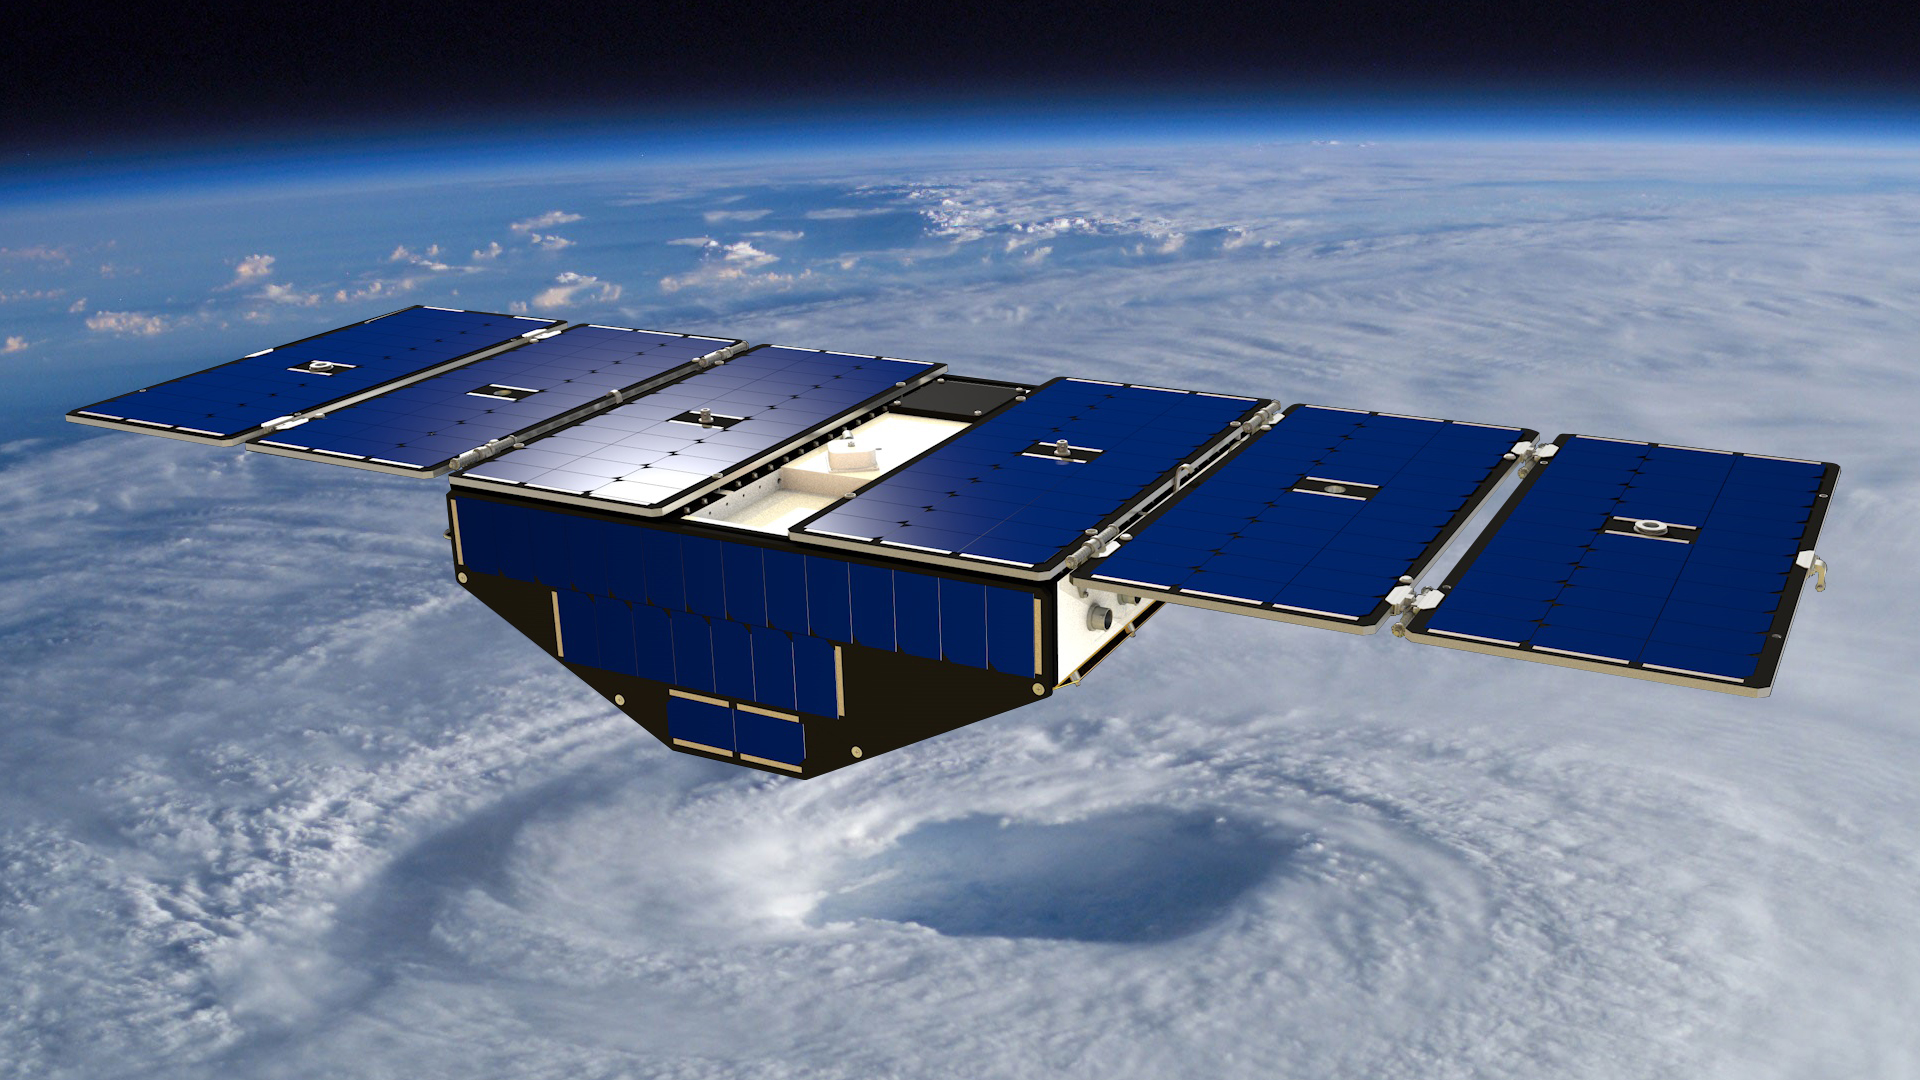 Image: Artist's concept of one of the eight Cyclone Global Navigation Satellite System satellites